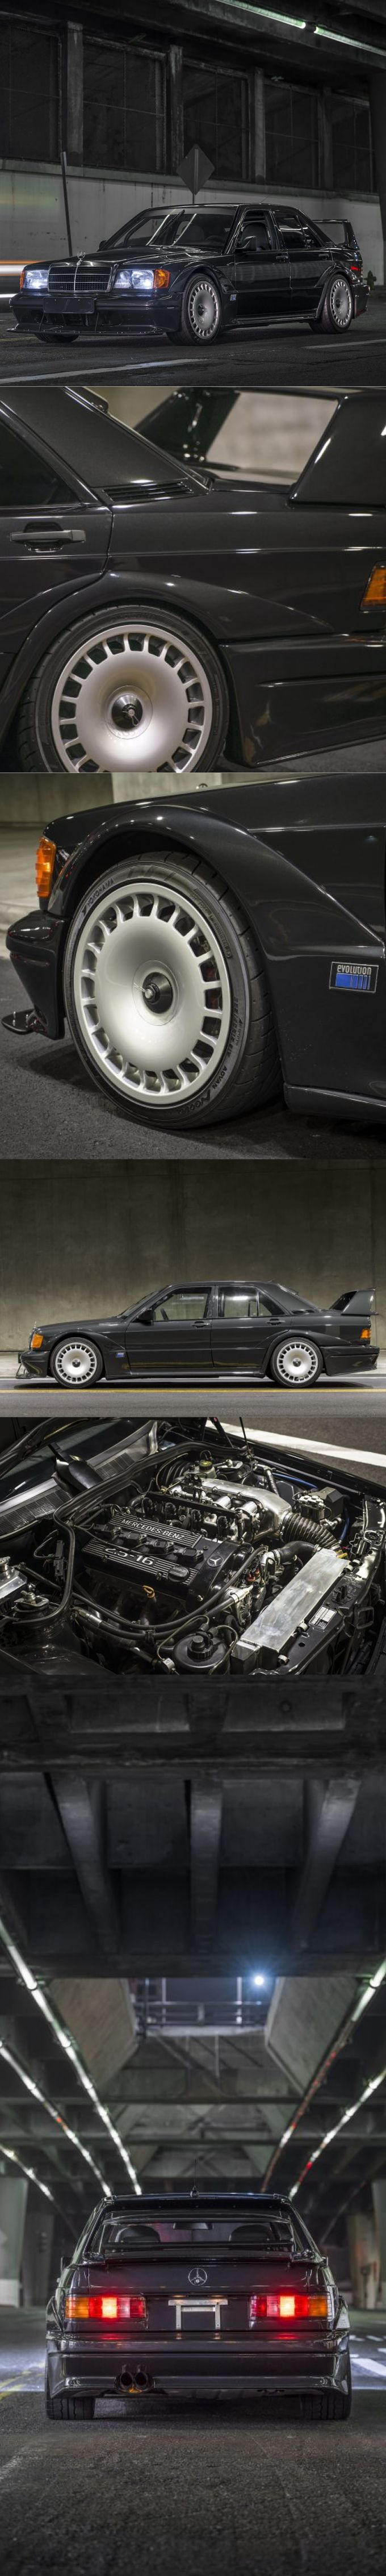 1990 Mercedes-Benz 190E 2.5-16 Evo 2 /  Germany / black /